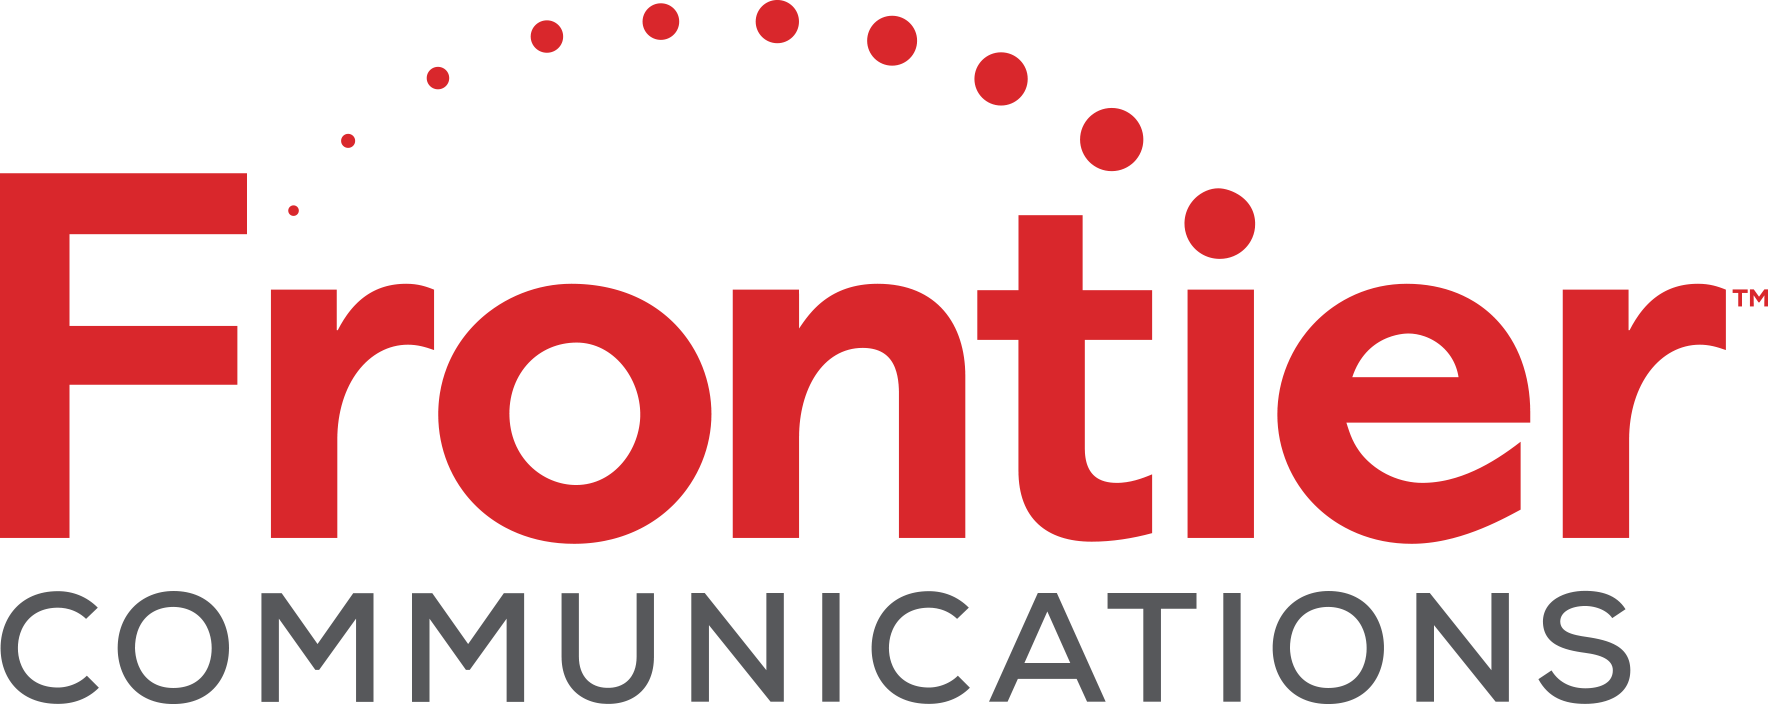 frontier-communications-corp